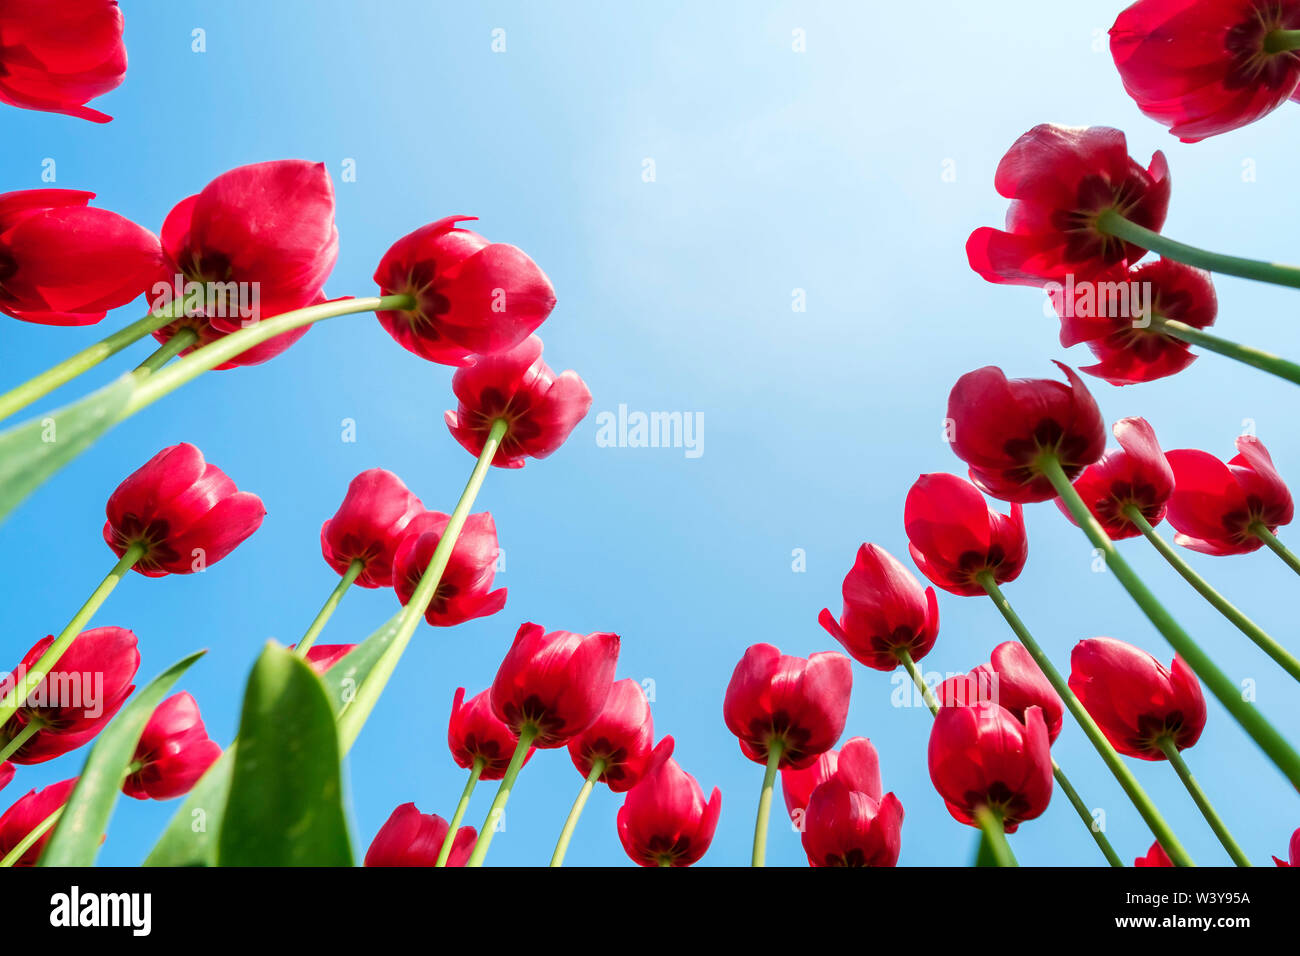 Looking up at tulip blossoms against blue sunny sky, Ursem, North Holland, Netherlands - Stock Image